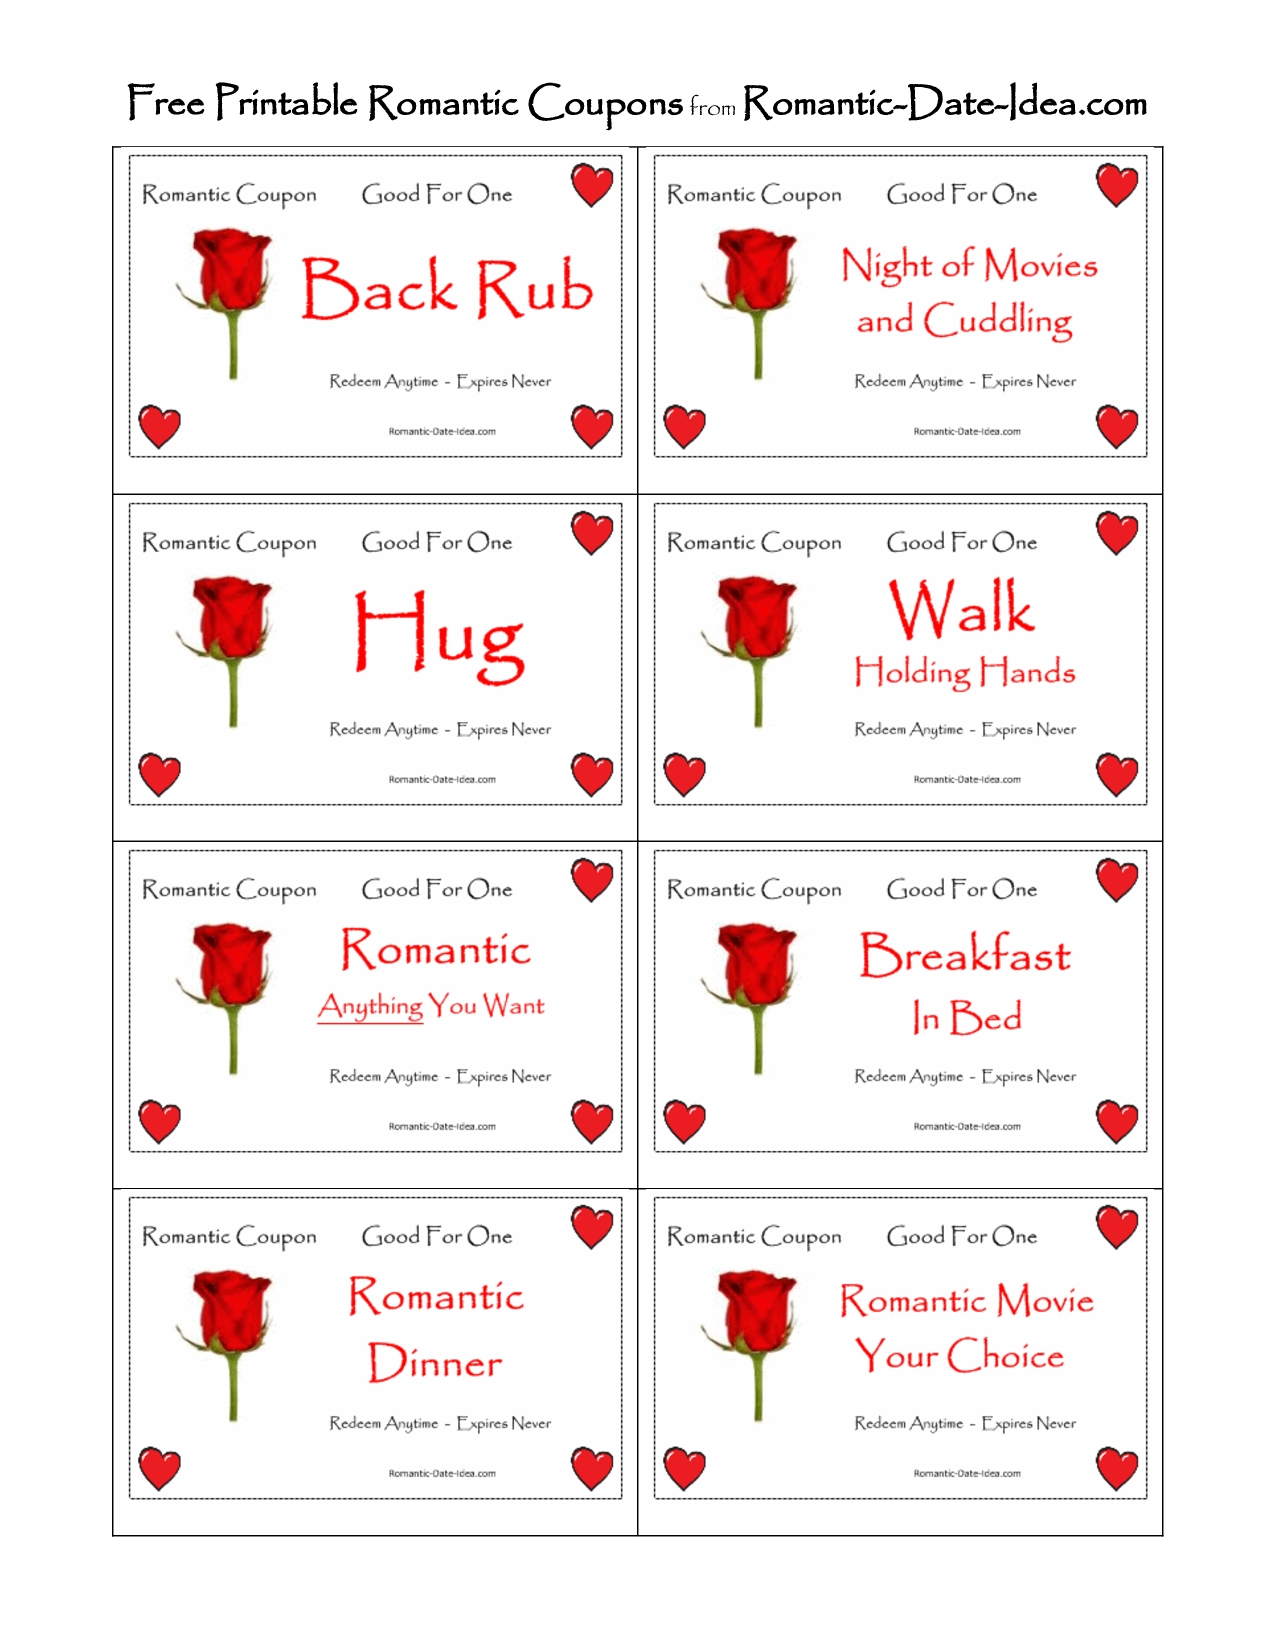 10 Unique Romantic Coupon Ideas For Him valentines day old school sometimesgetting back to the basics 2020